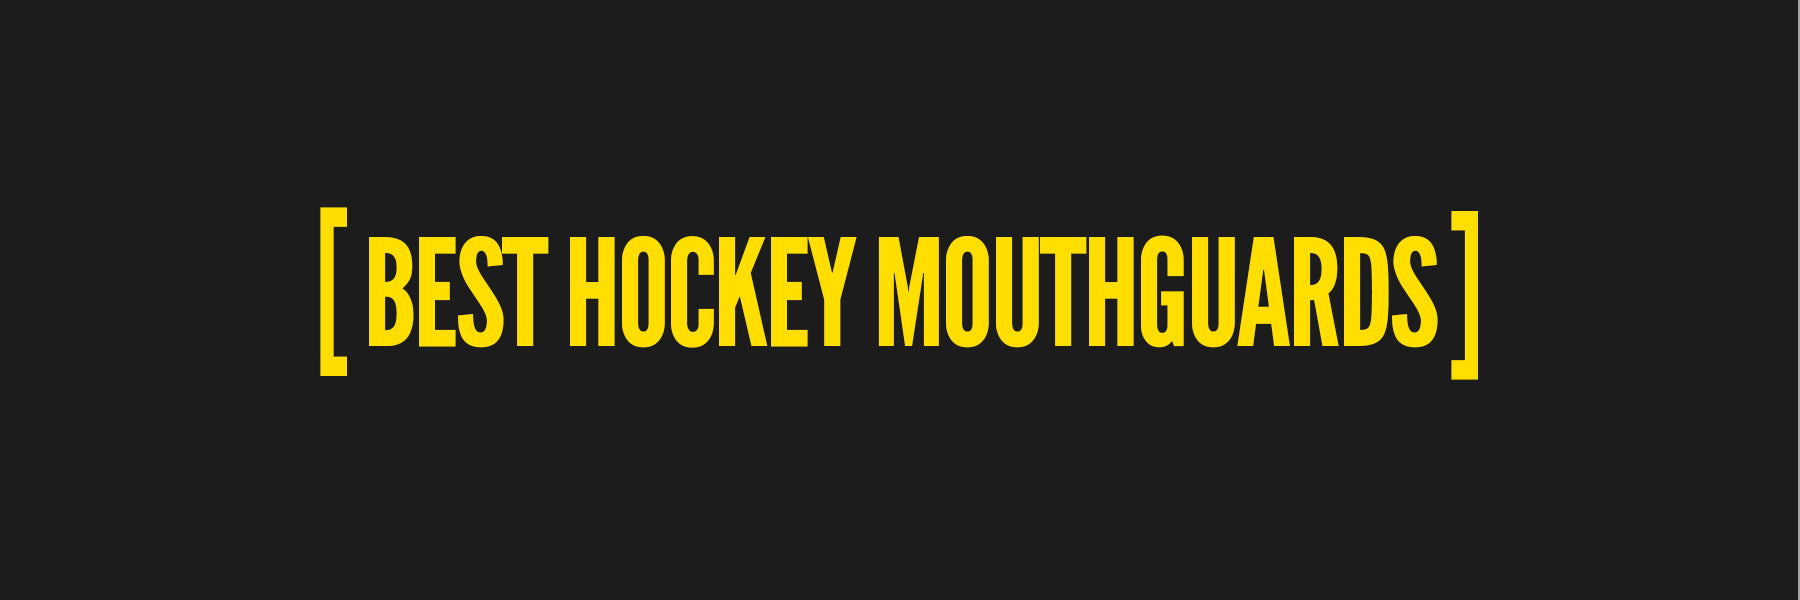 Nxtrnd what mouthguards do hockey players wear